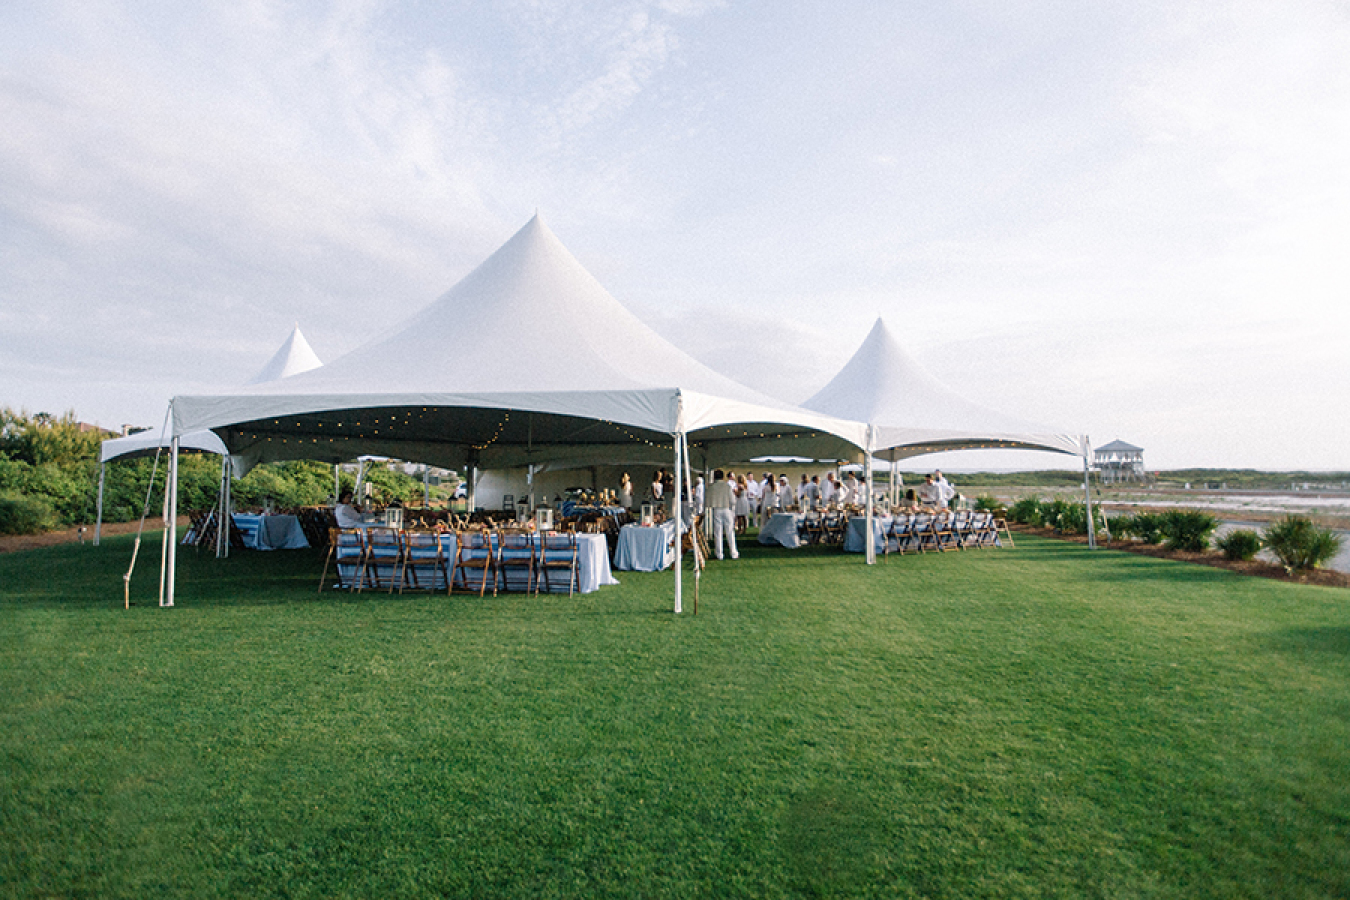 rehearsal-dinner-under-marquee-tent http://itgirlweddings.com/white-party-rehearsal-dinner/